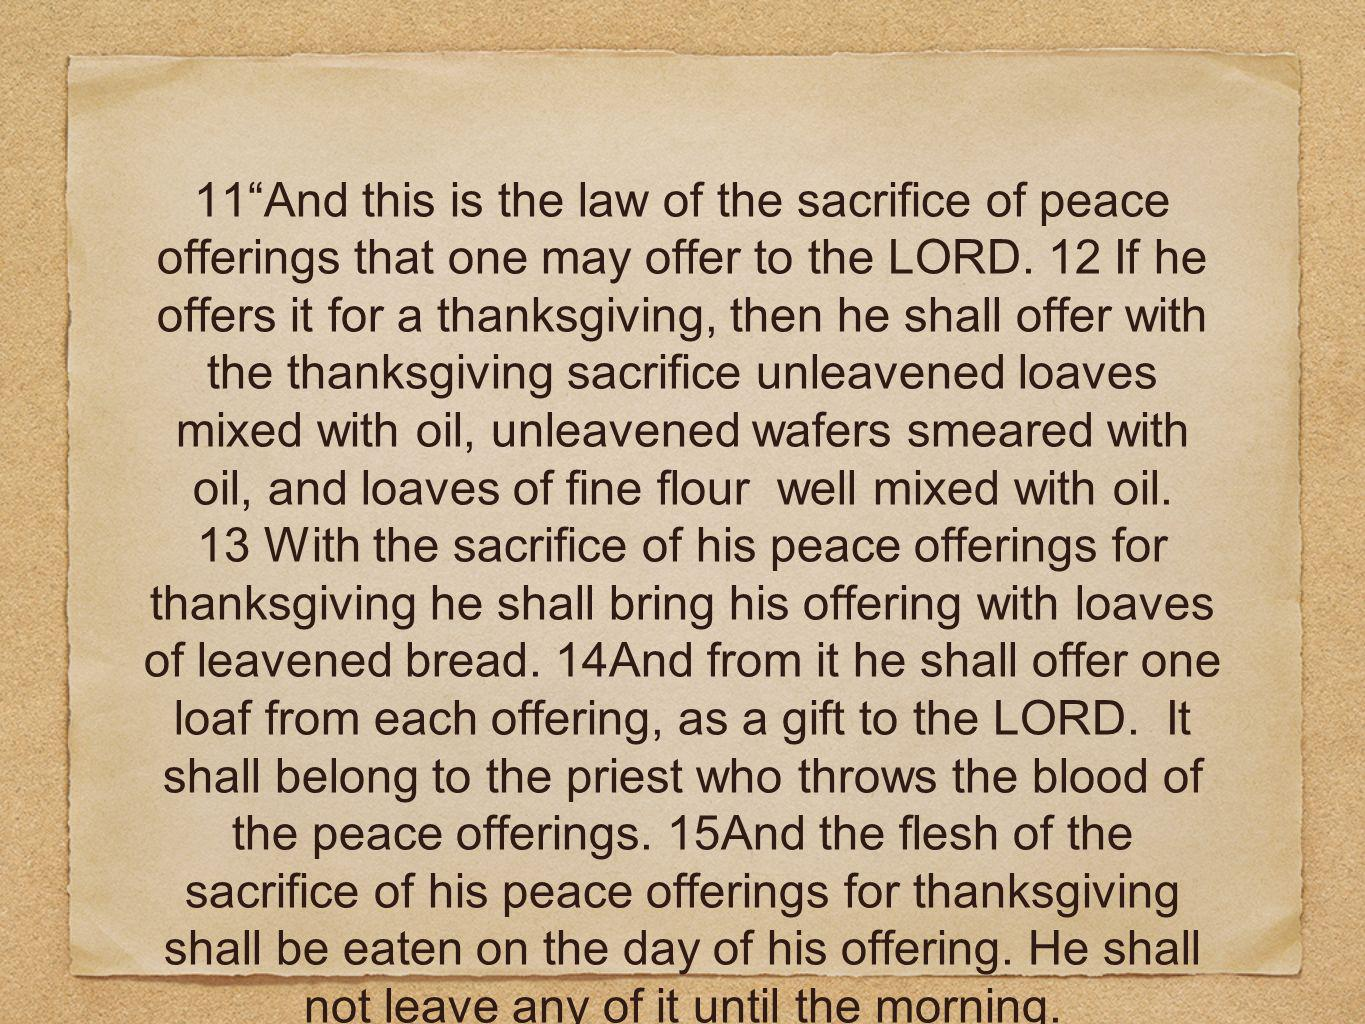 11 And this is the law of the sacrifice of peace offerings that one may offer to the LORD.